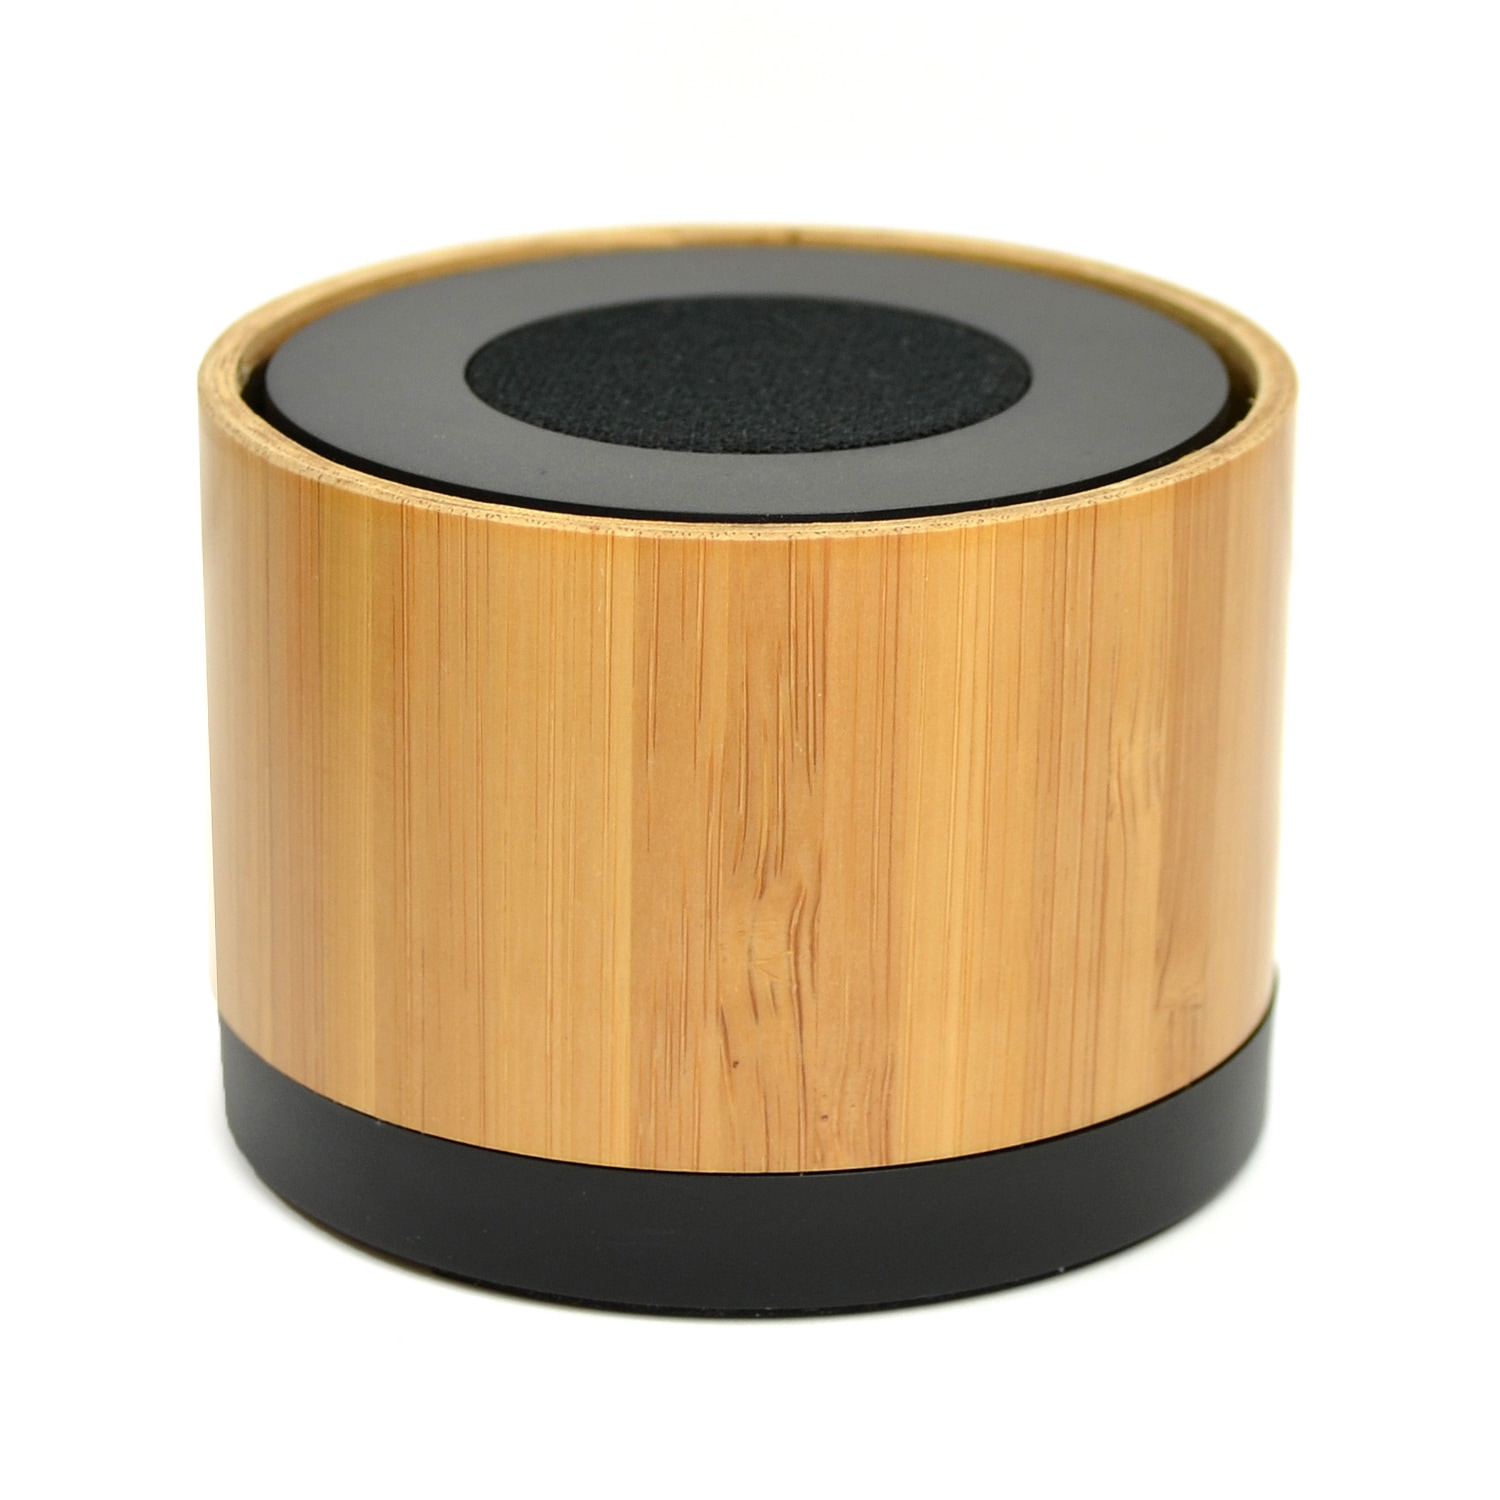 Shop Tmbr Bamboo Wood Wireless Bluetooth Speaker - Free Shipping On ...